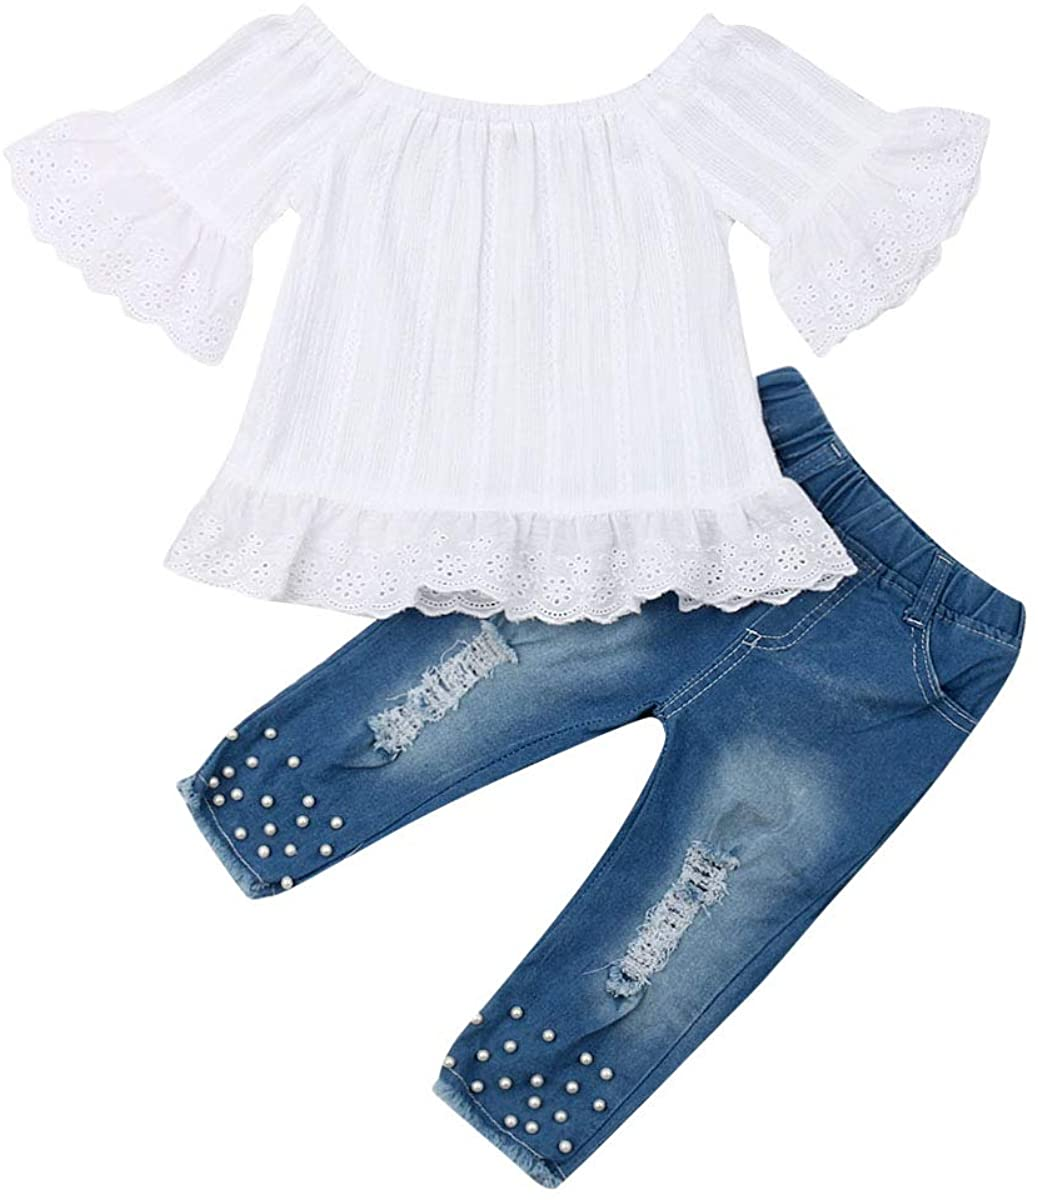 Kids Little Girls Ruffle Floral Cami Tops Off Shoulder Shirt Ripped Pants Outfit Clothes Set